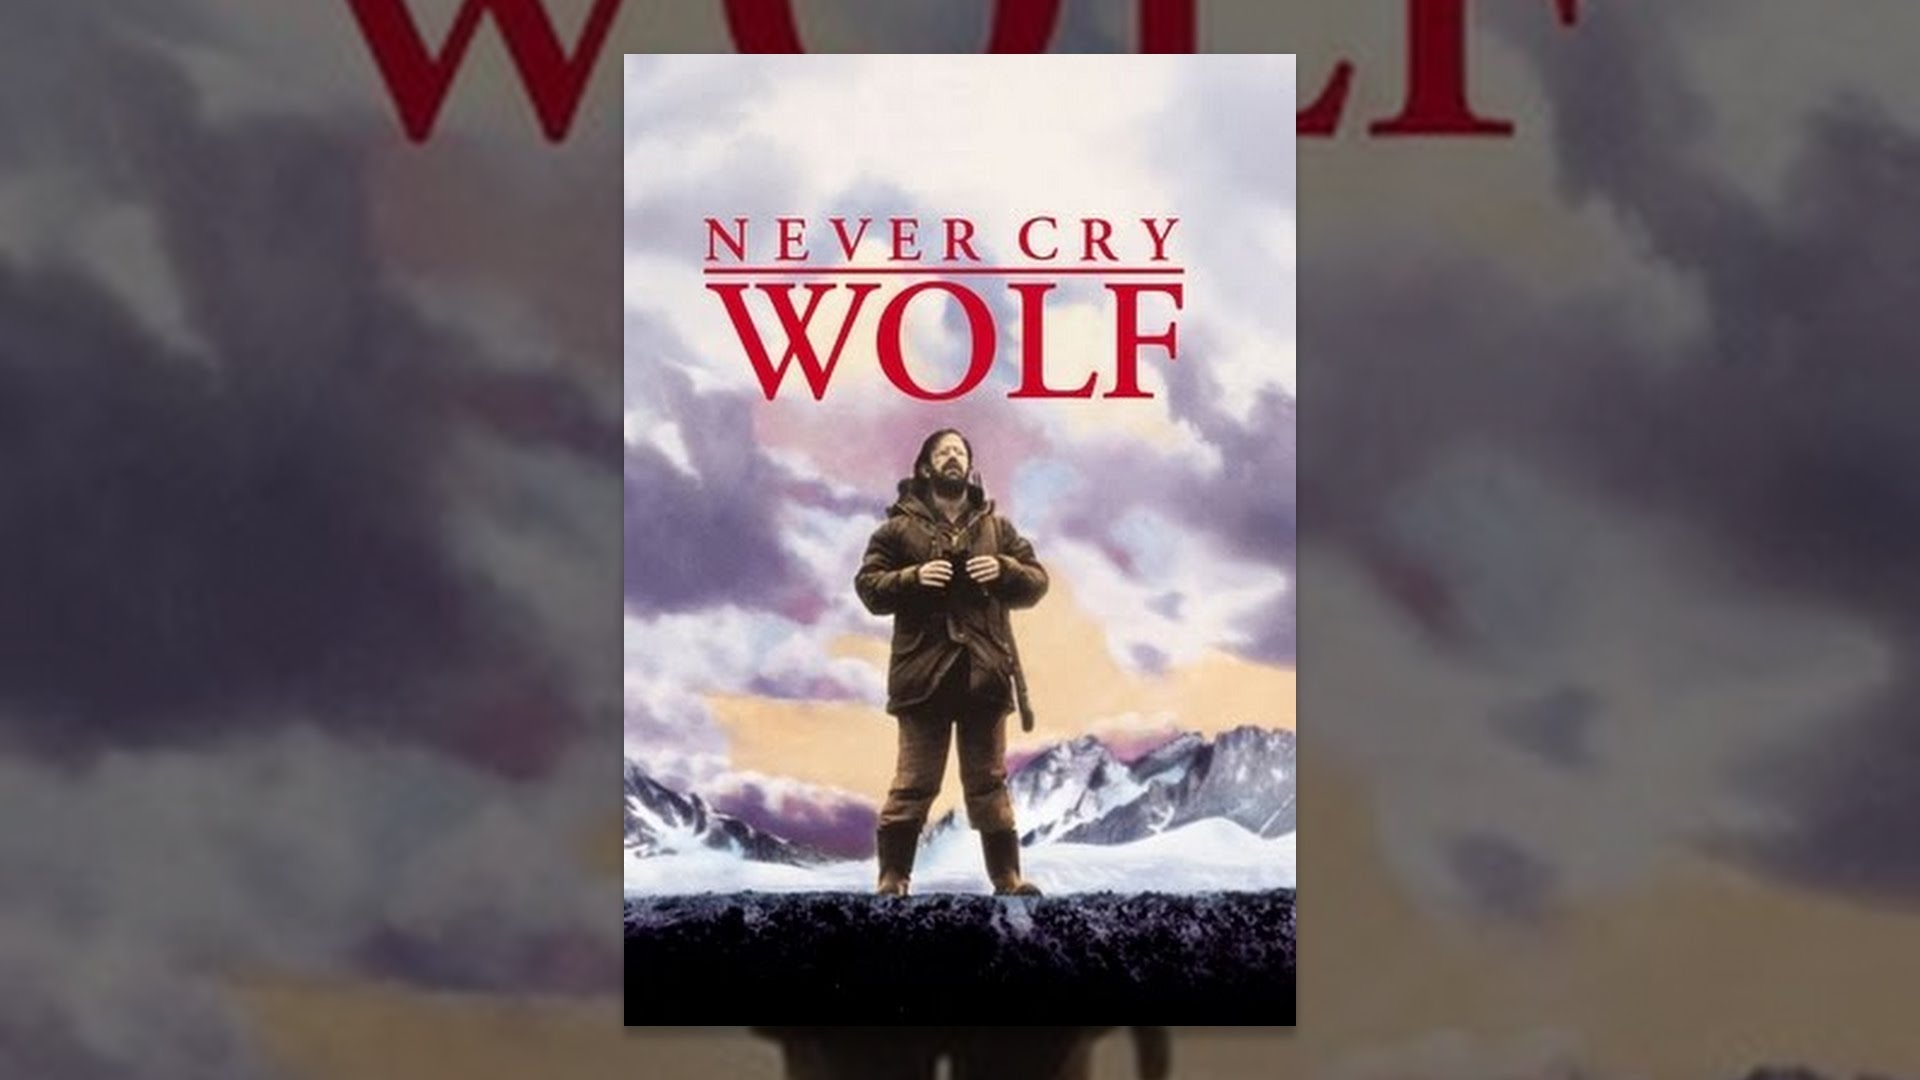 Never cry wolf movie essay